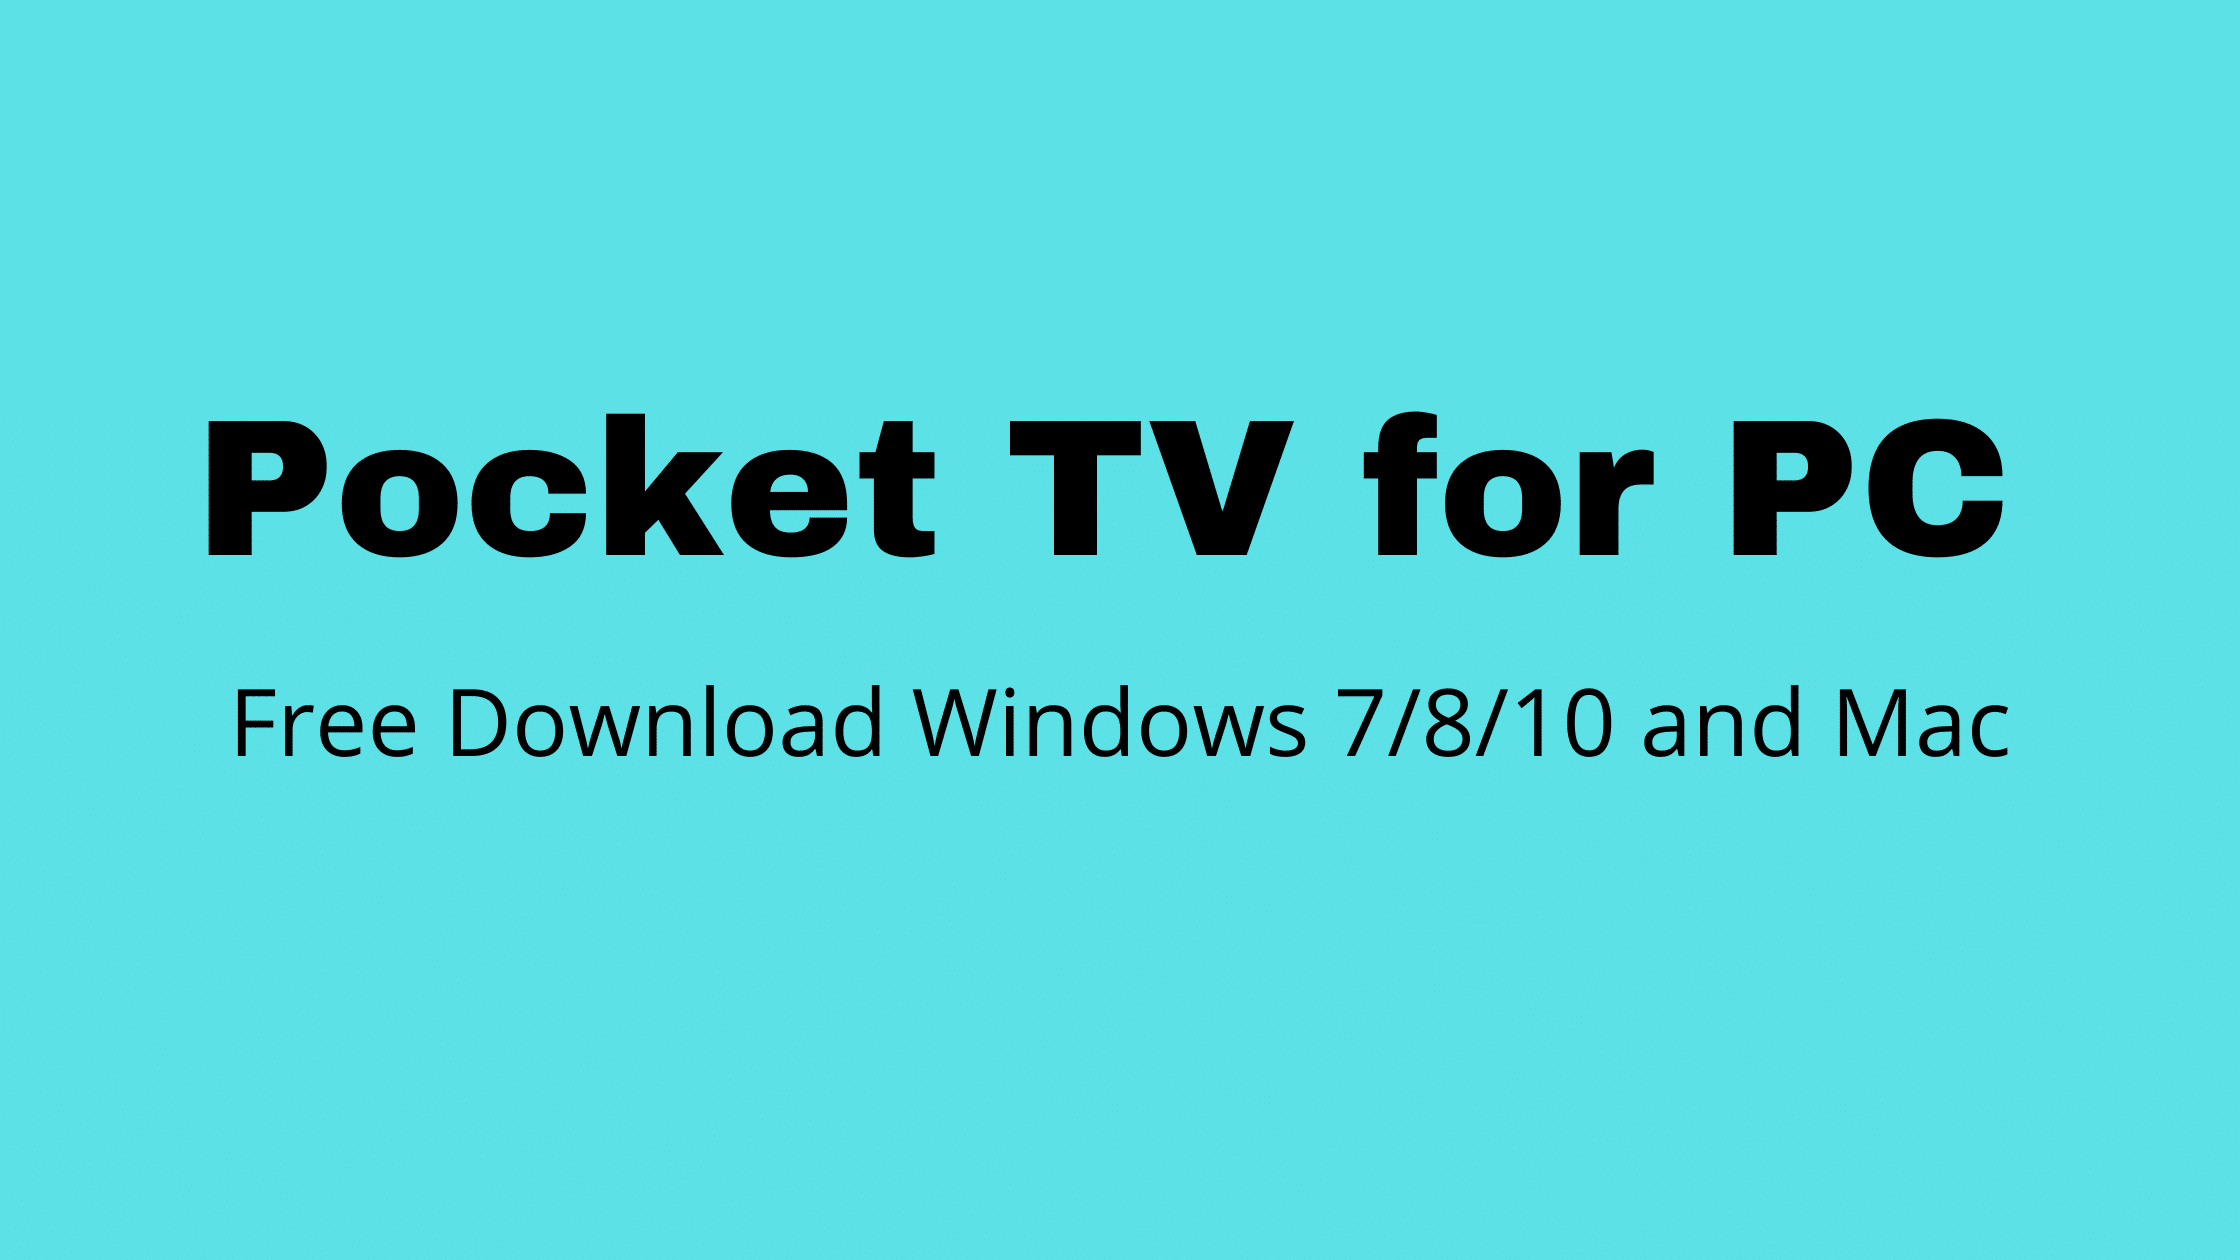 Pocket TV for PC